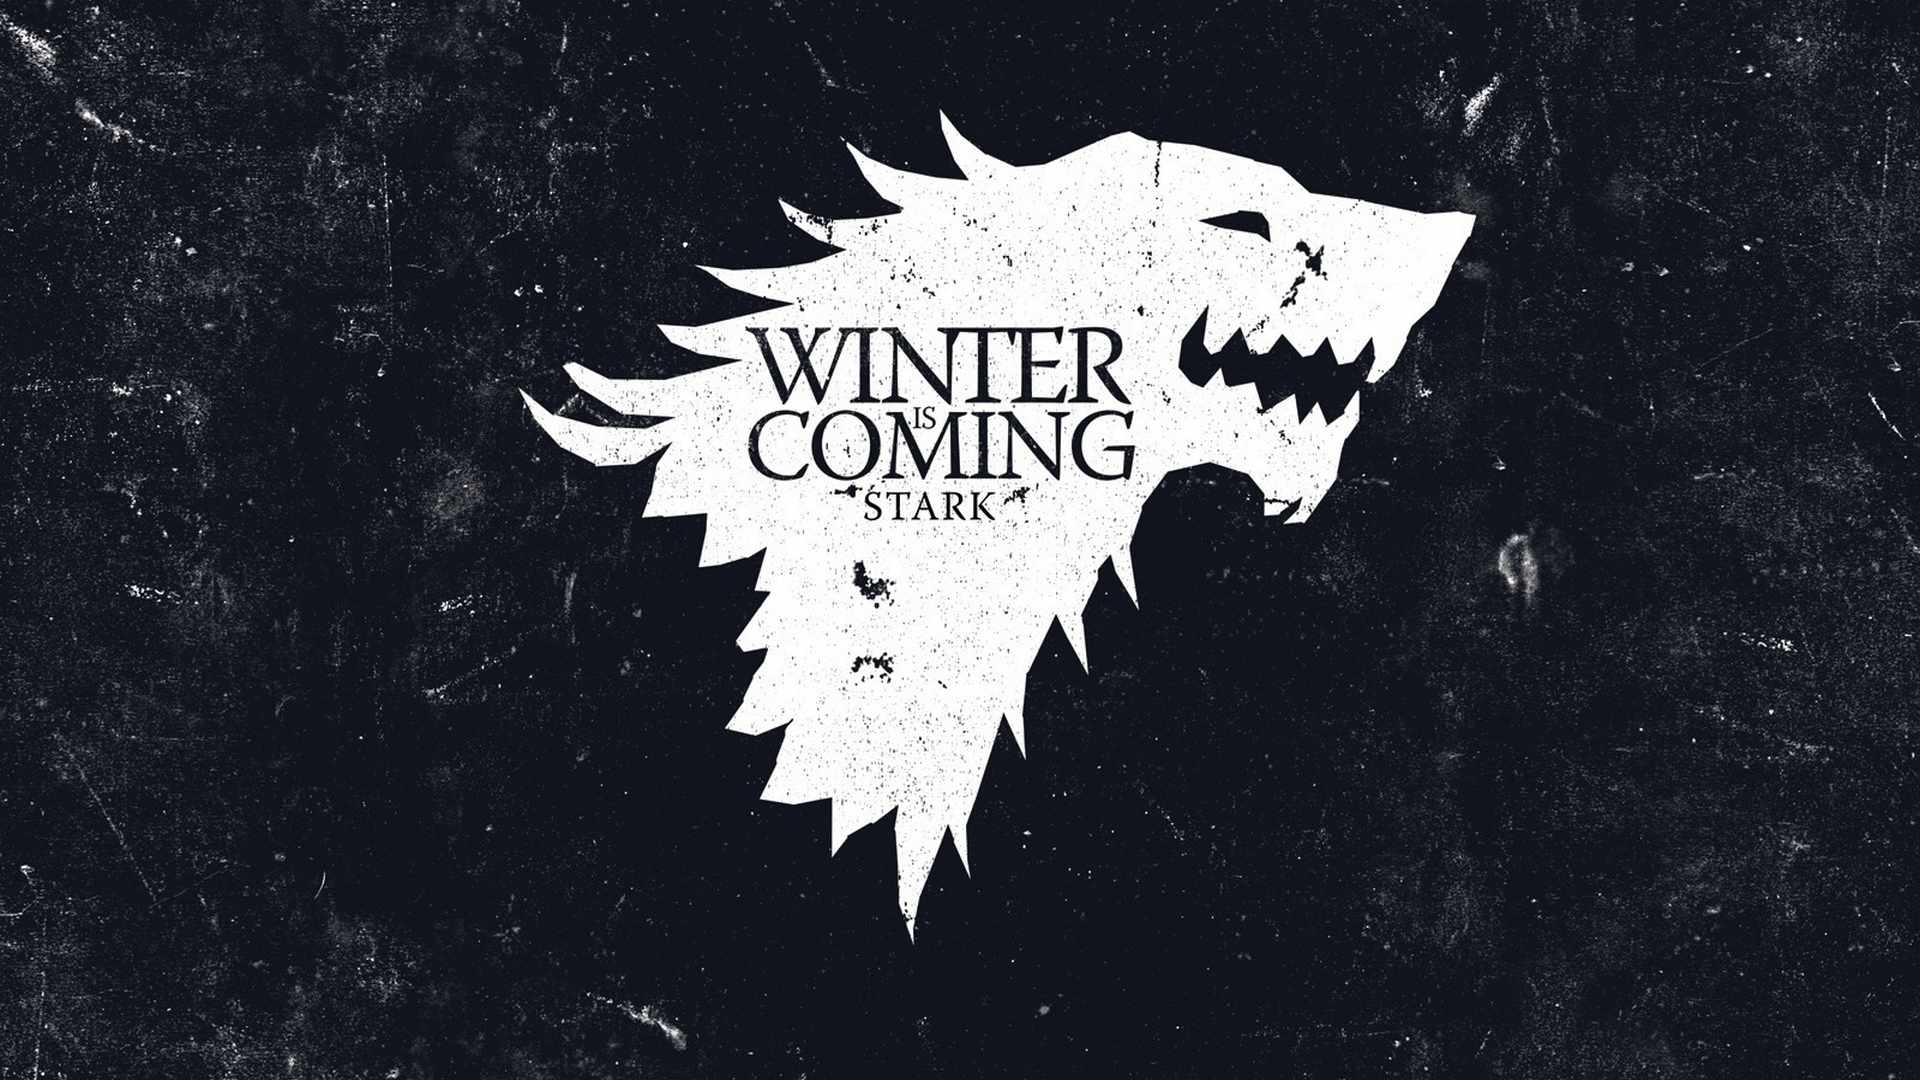 Download winter is coming game of thrones background HD wallpaper 1920x1080